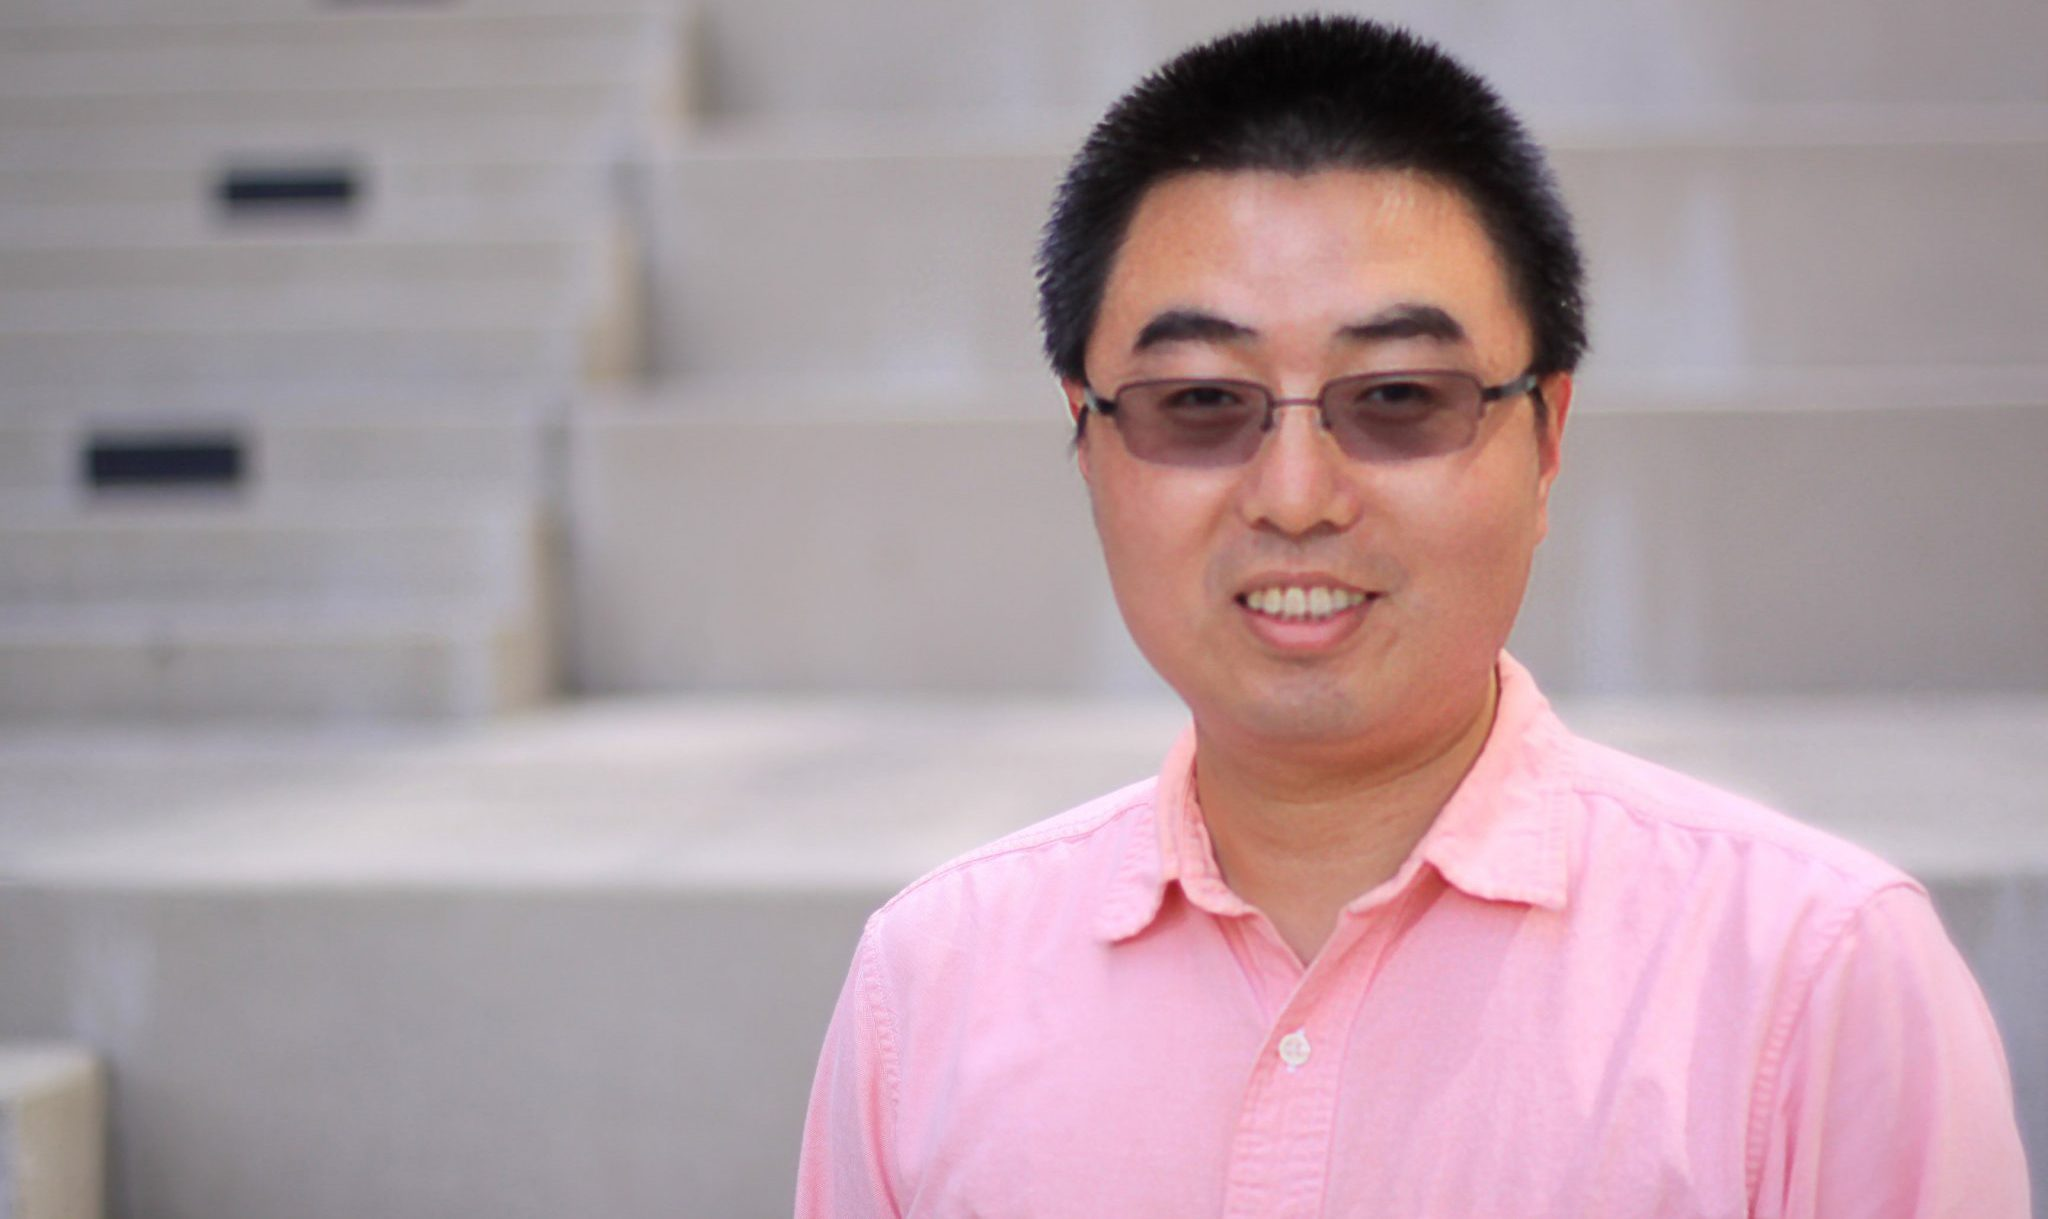 Jianwu Wang receives NSF CAREER Award to help climate scientists make data-driven discoveries